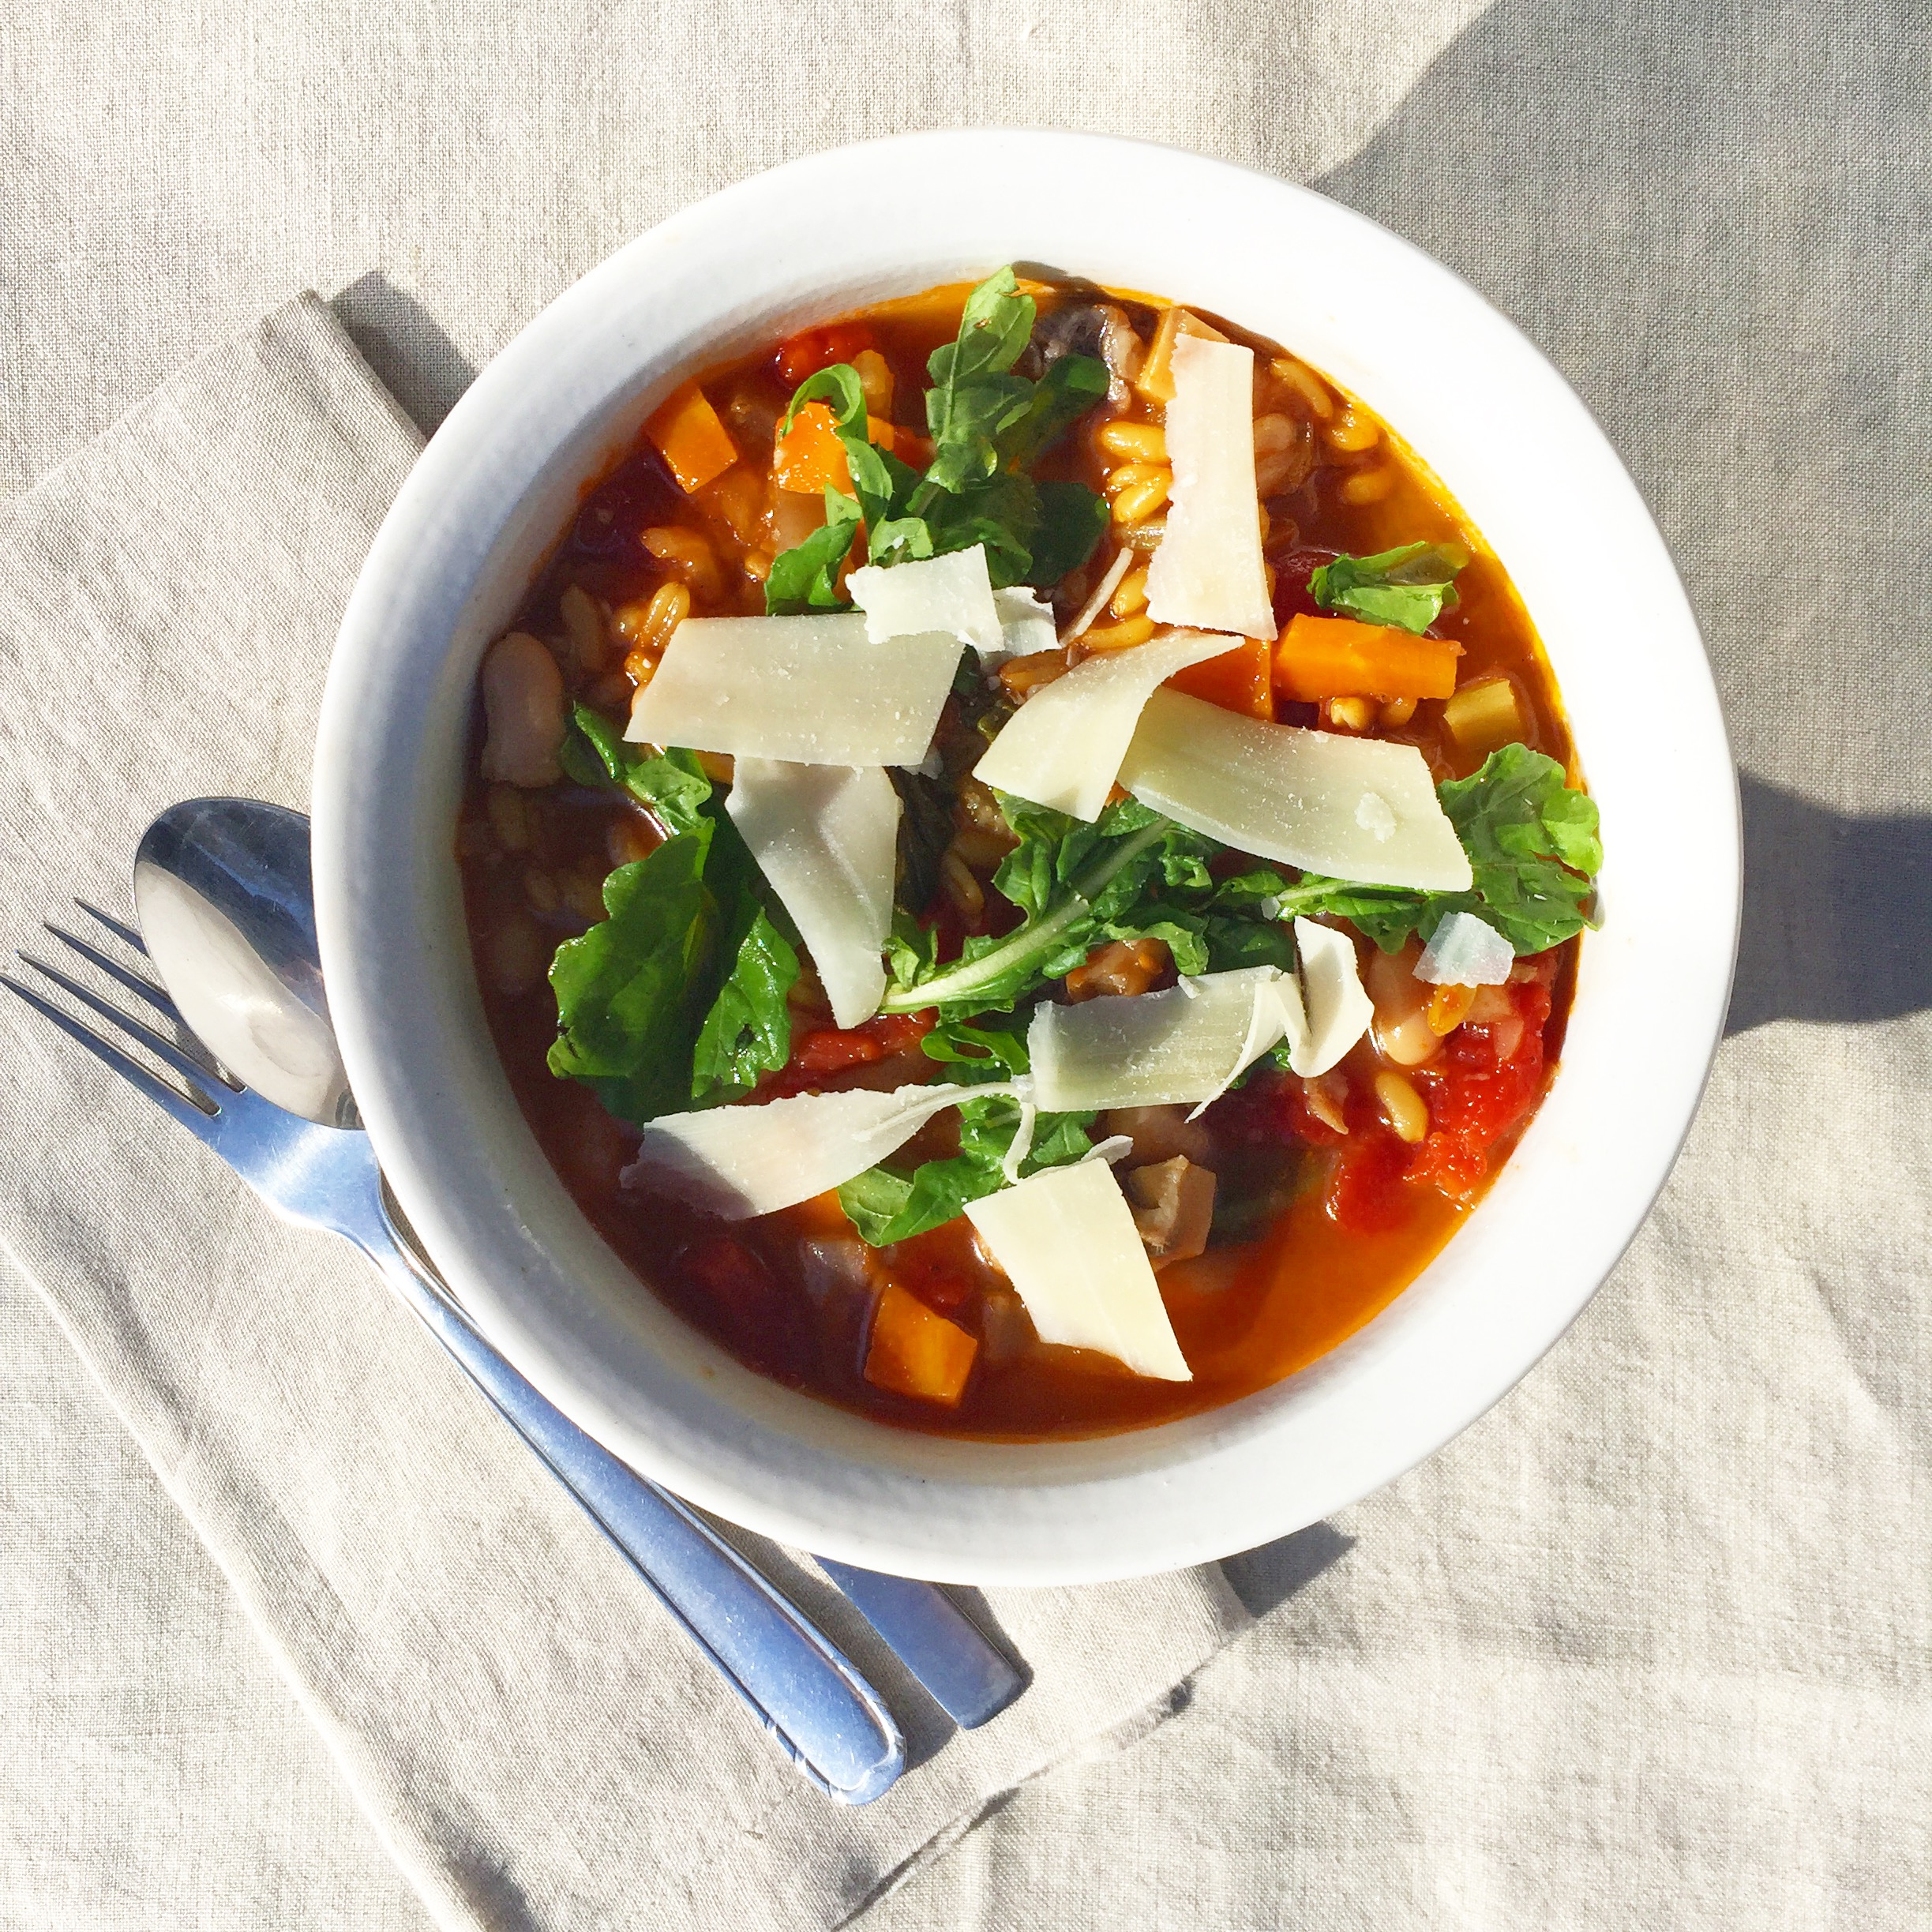 Nutritious One-Pot Meals